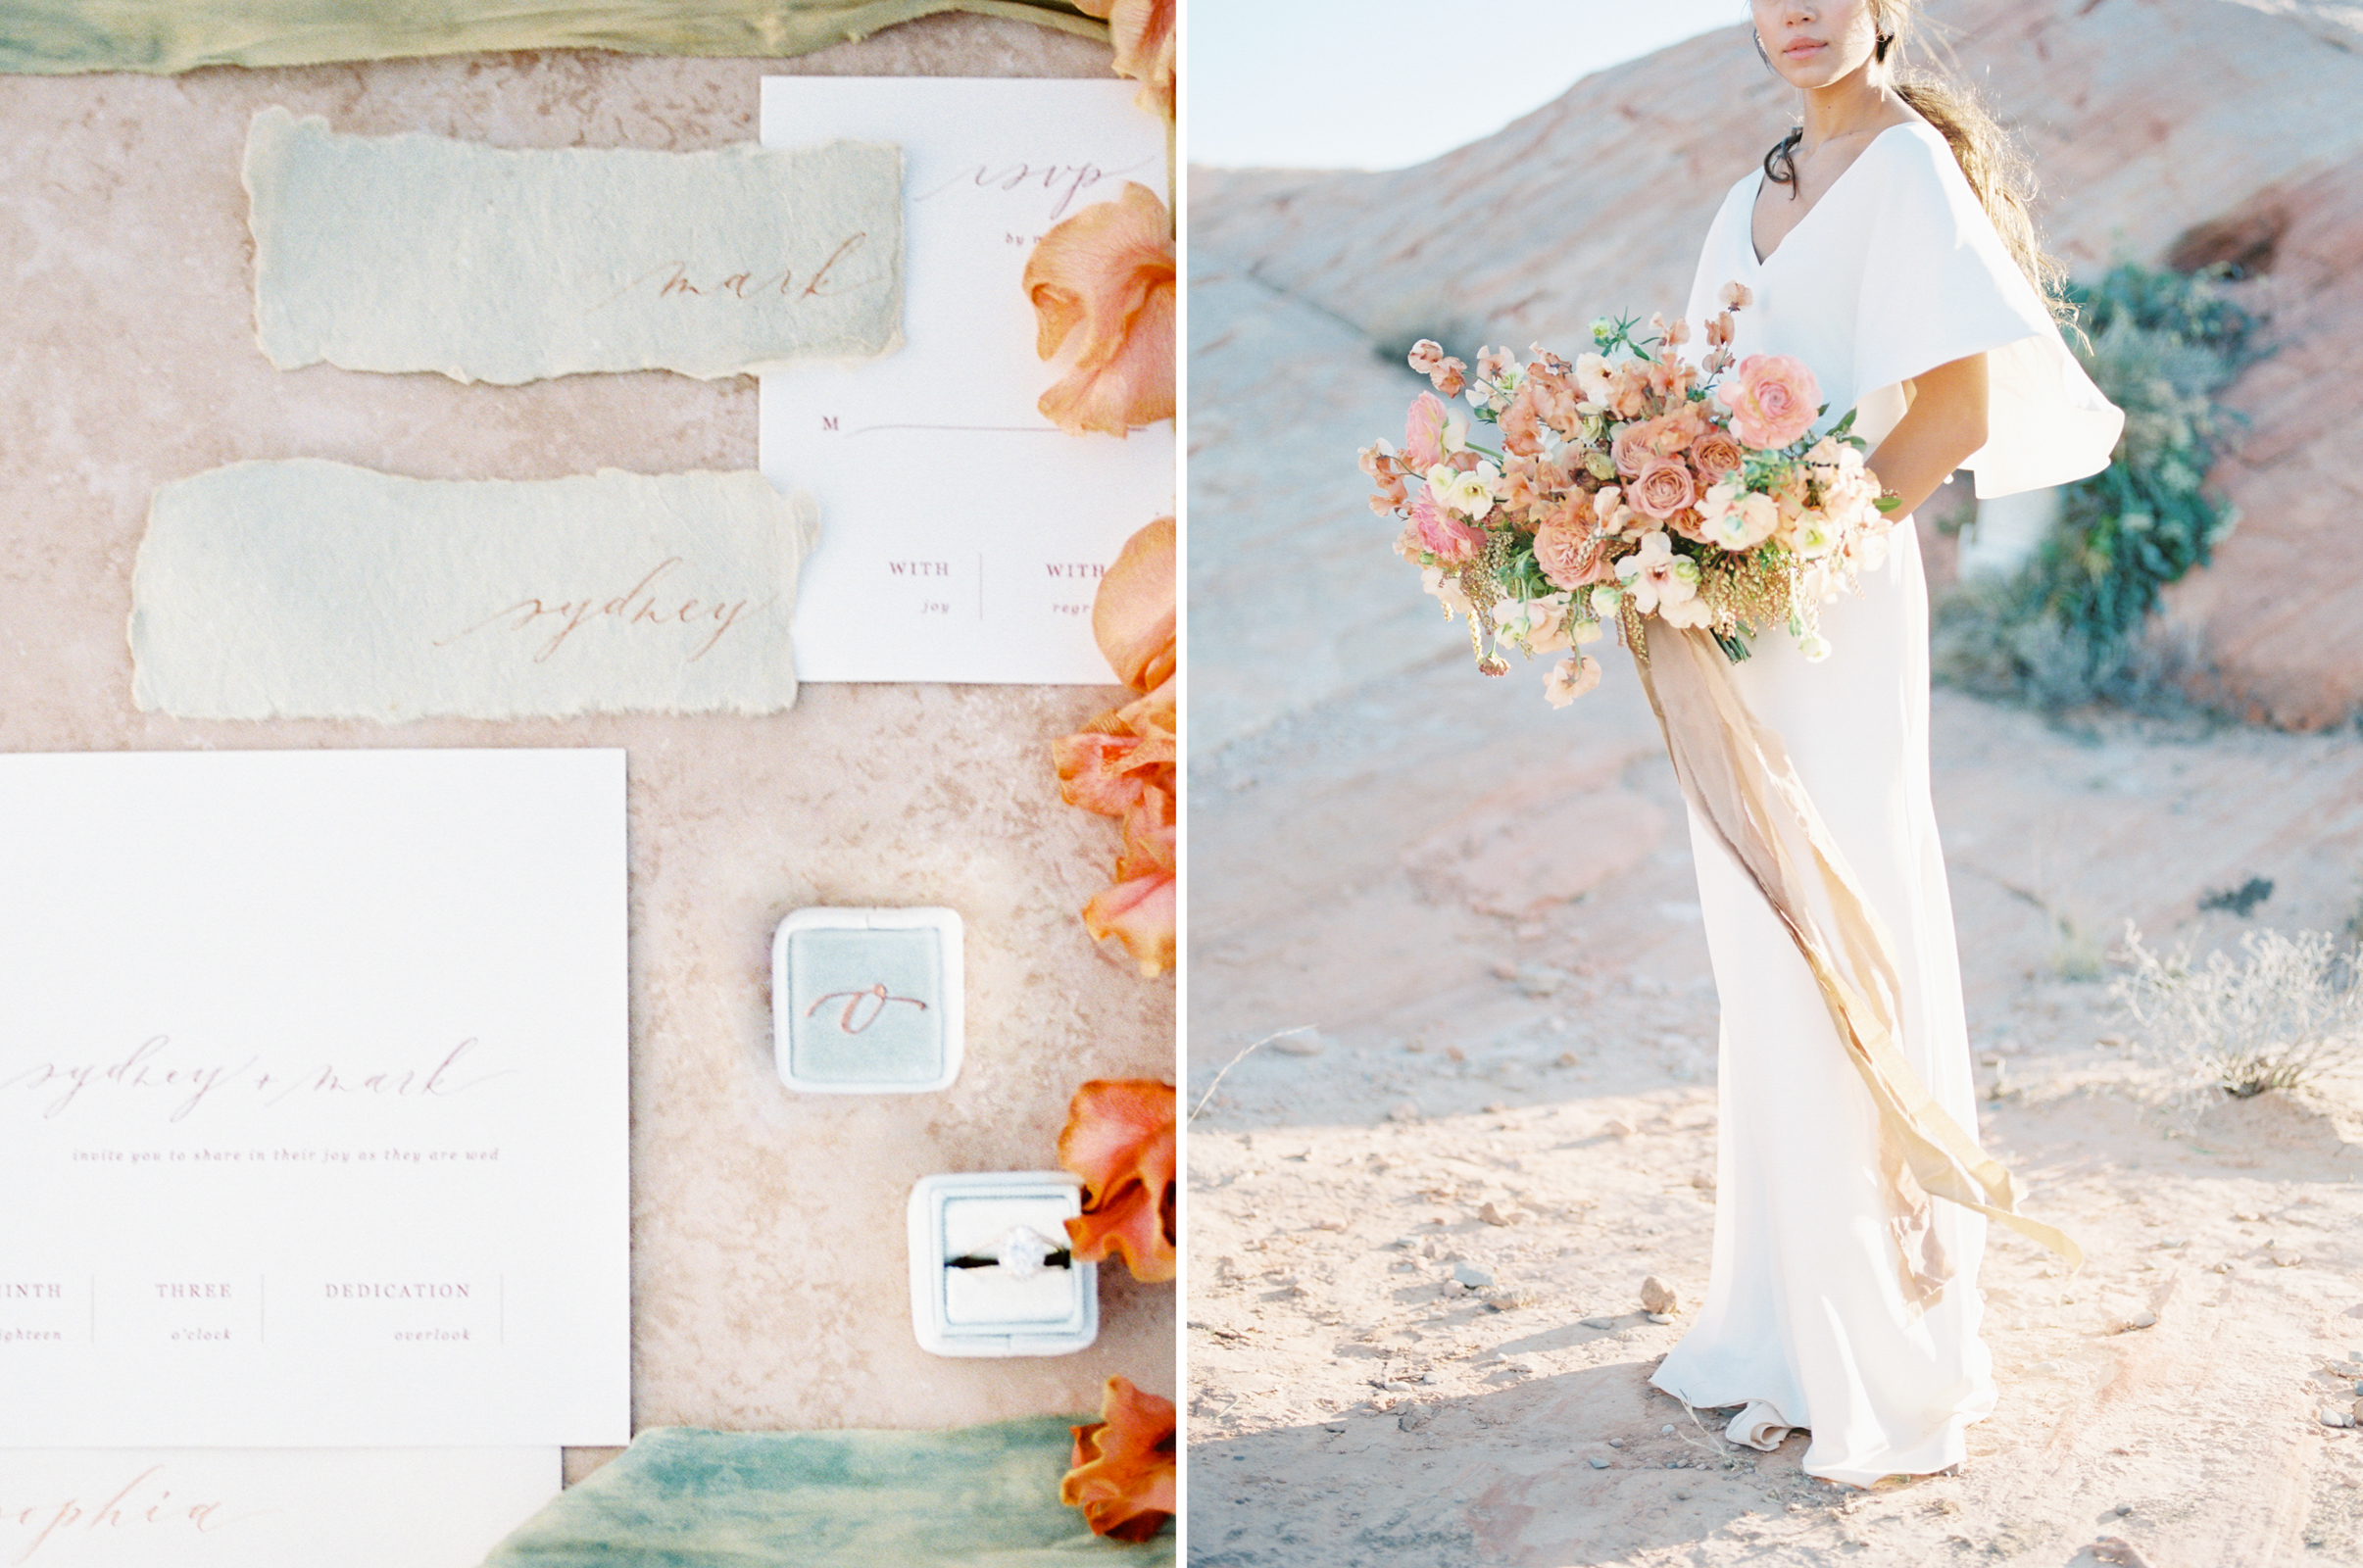 AKP_Desert_Wedding_Bridal_Shoot_Film_Fine_Art_Wedding_Photographer_Los_Angeles-11.jpg